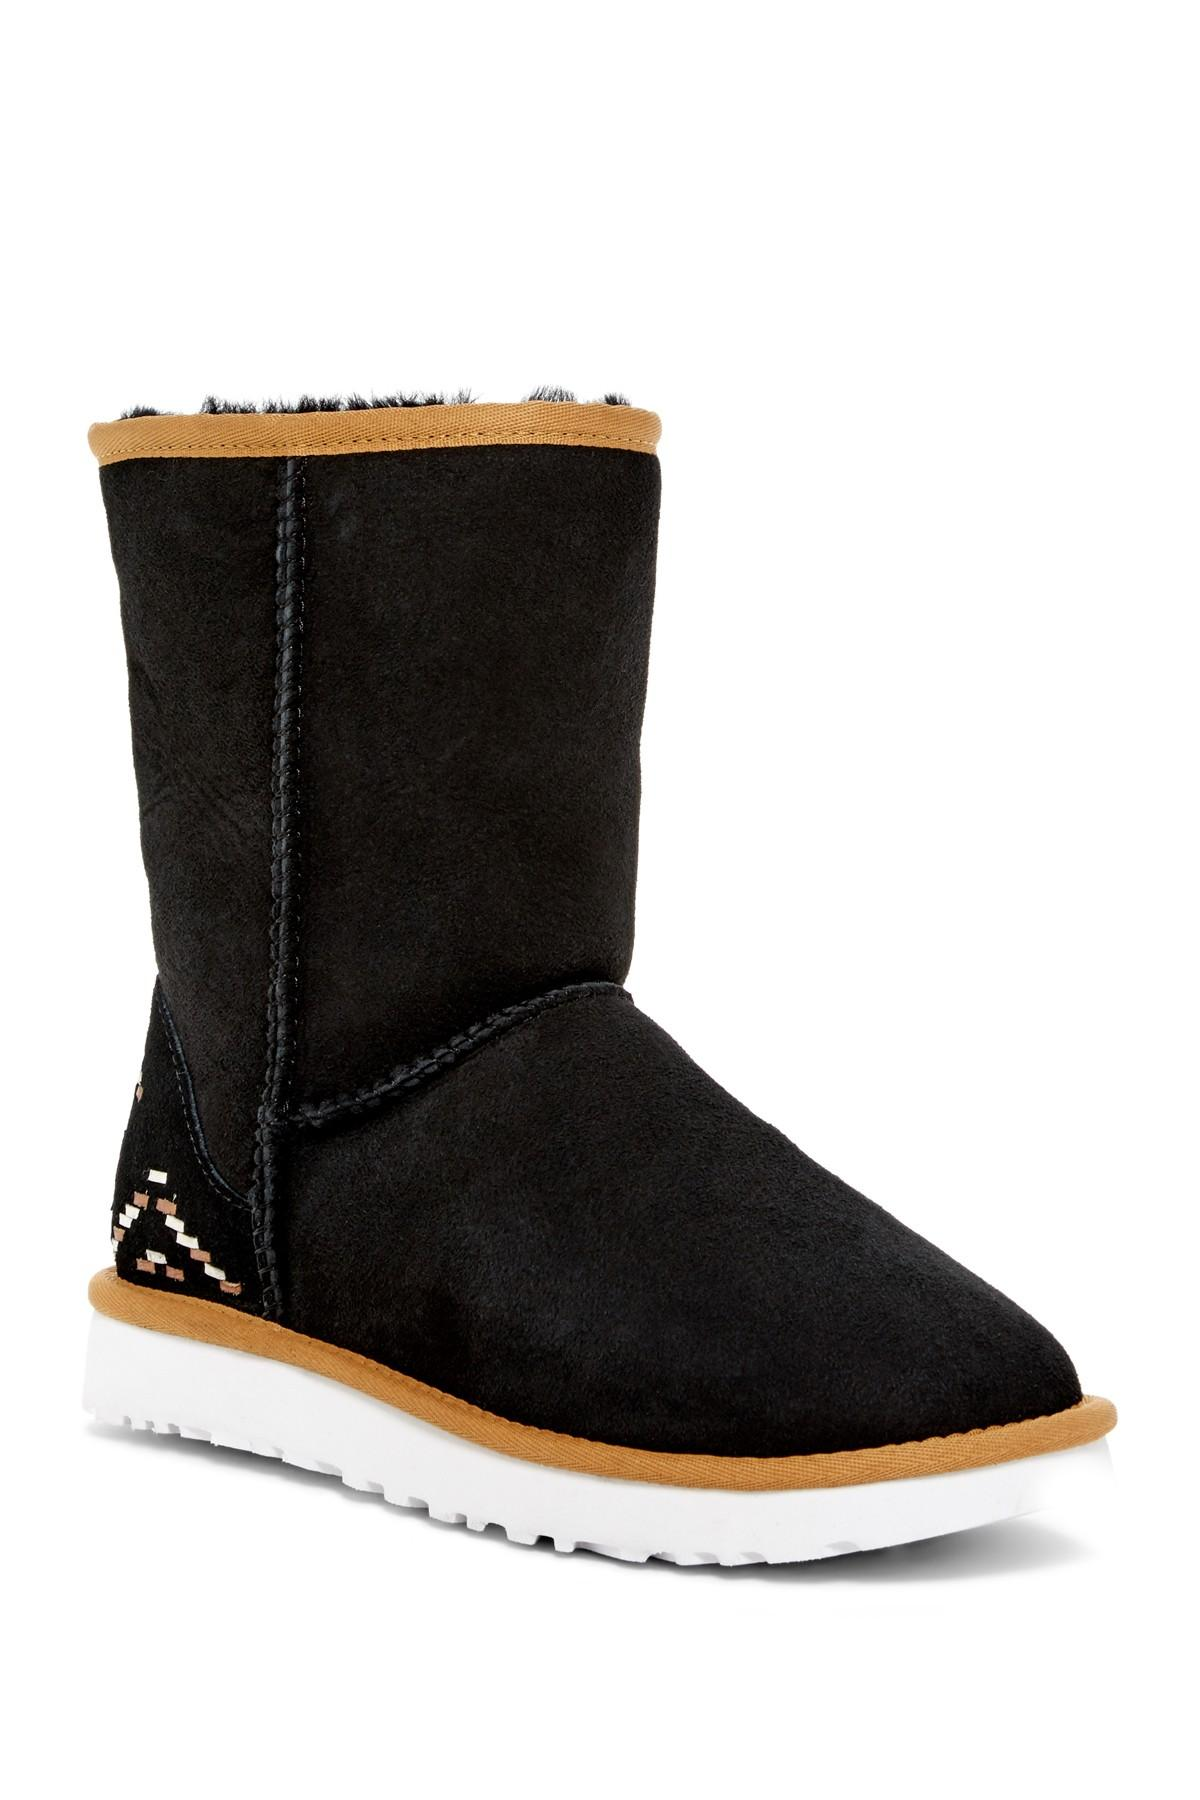 d9d26e54091 Women's Black Australia Classic Short Genuine Shearling Lined - Rustic  Weave Boot